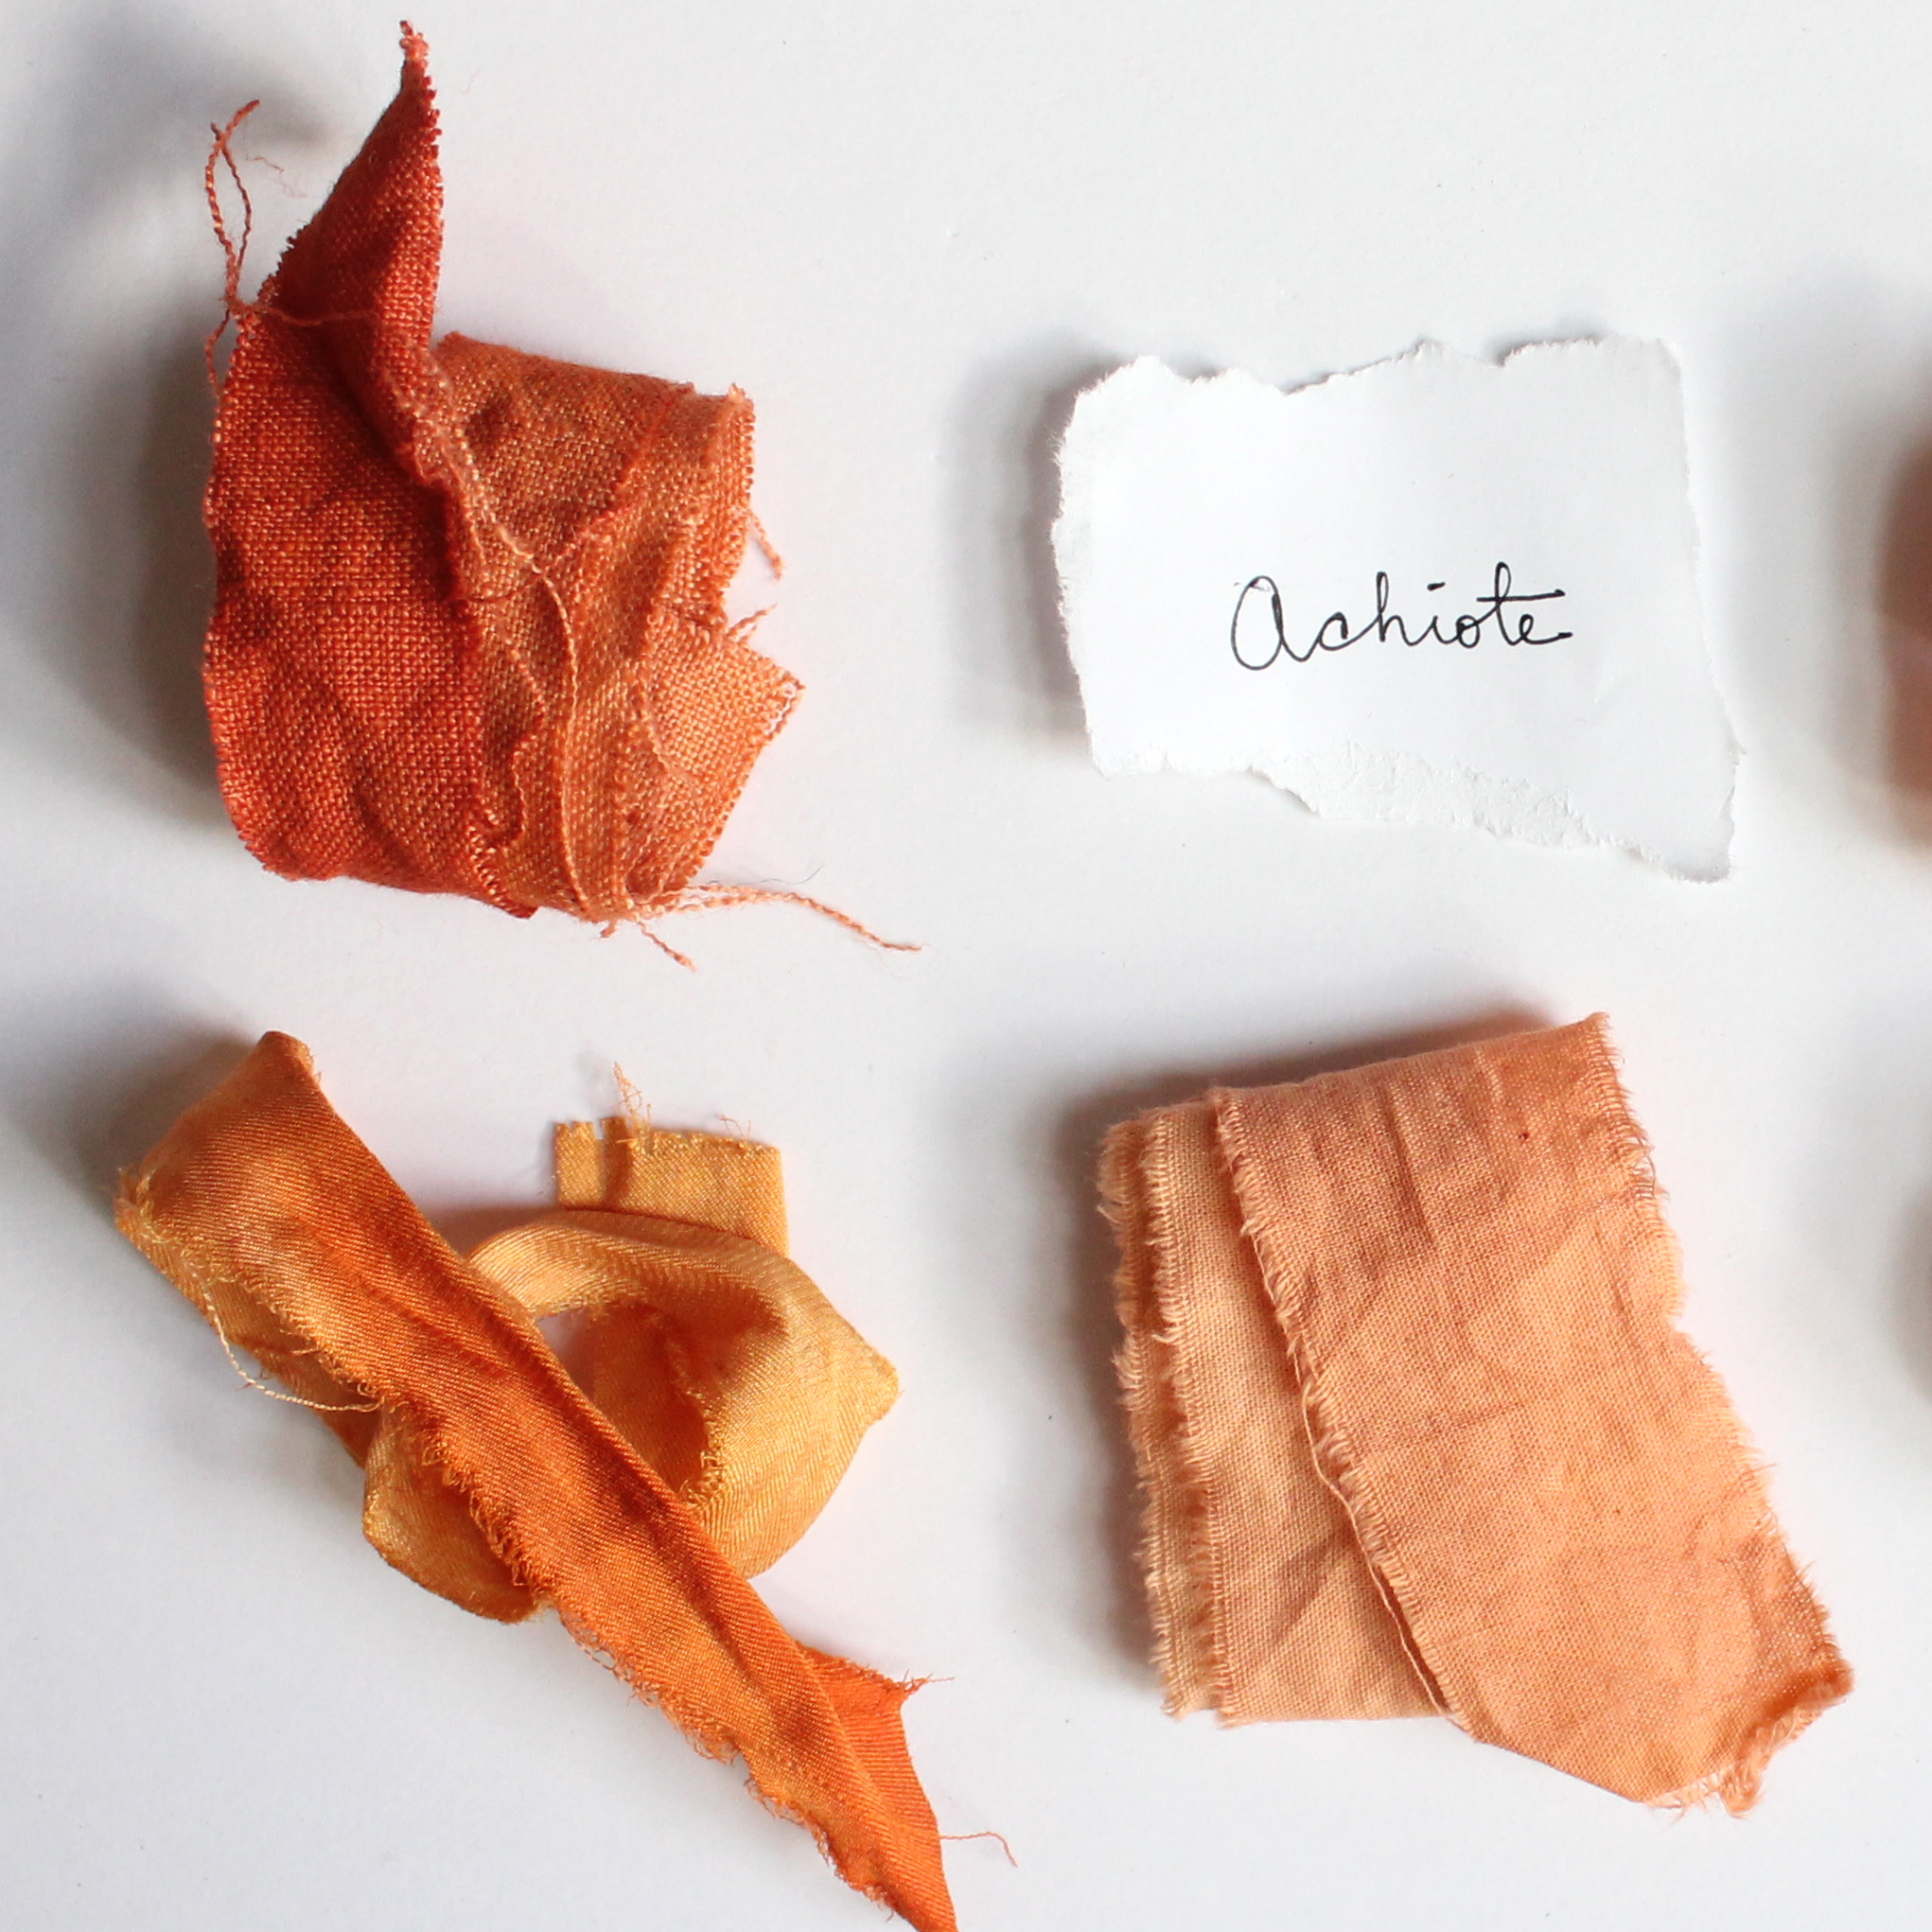 Achiote  Also called Annnato when used as a food coloring and known as Urucum in Brazil. It is the bright red seed of the plant which yields an orange or peach color.